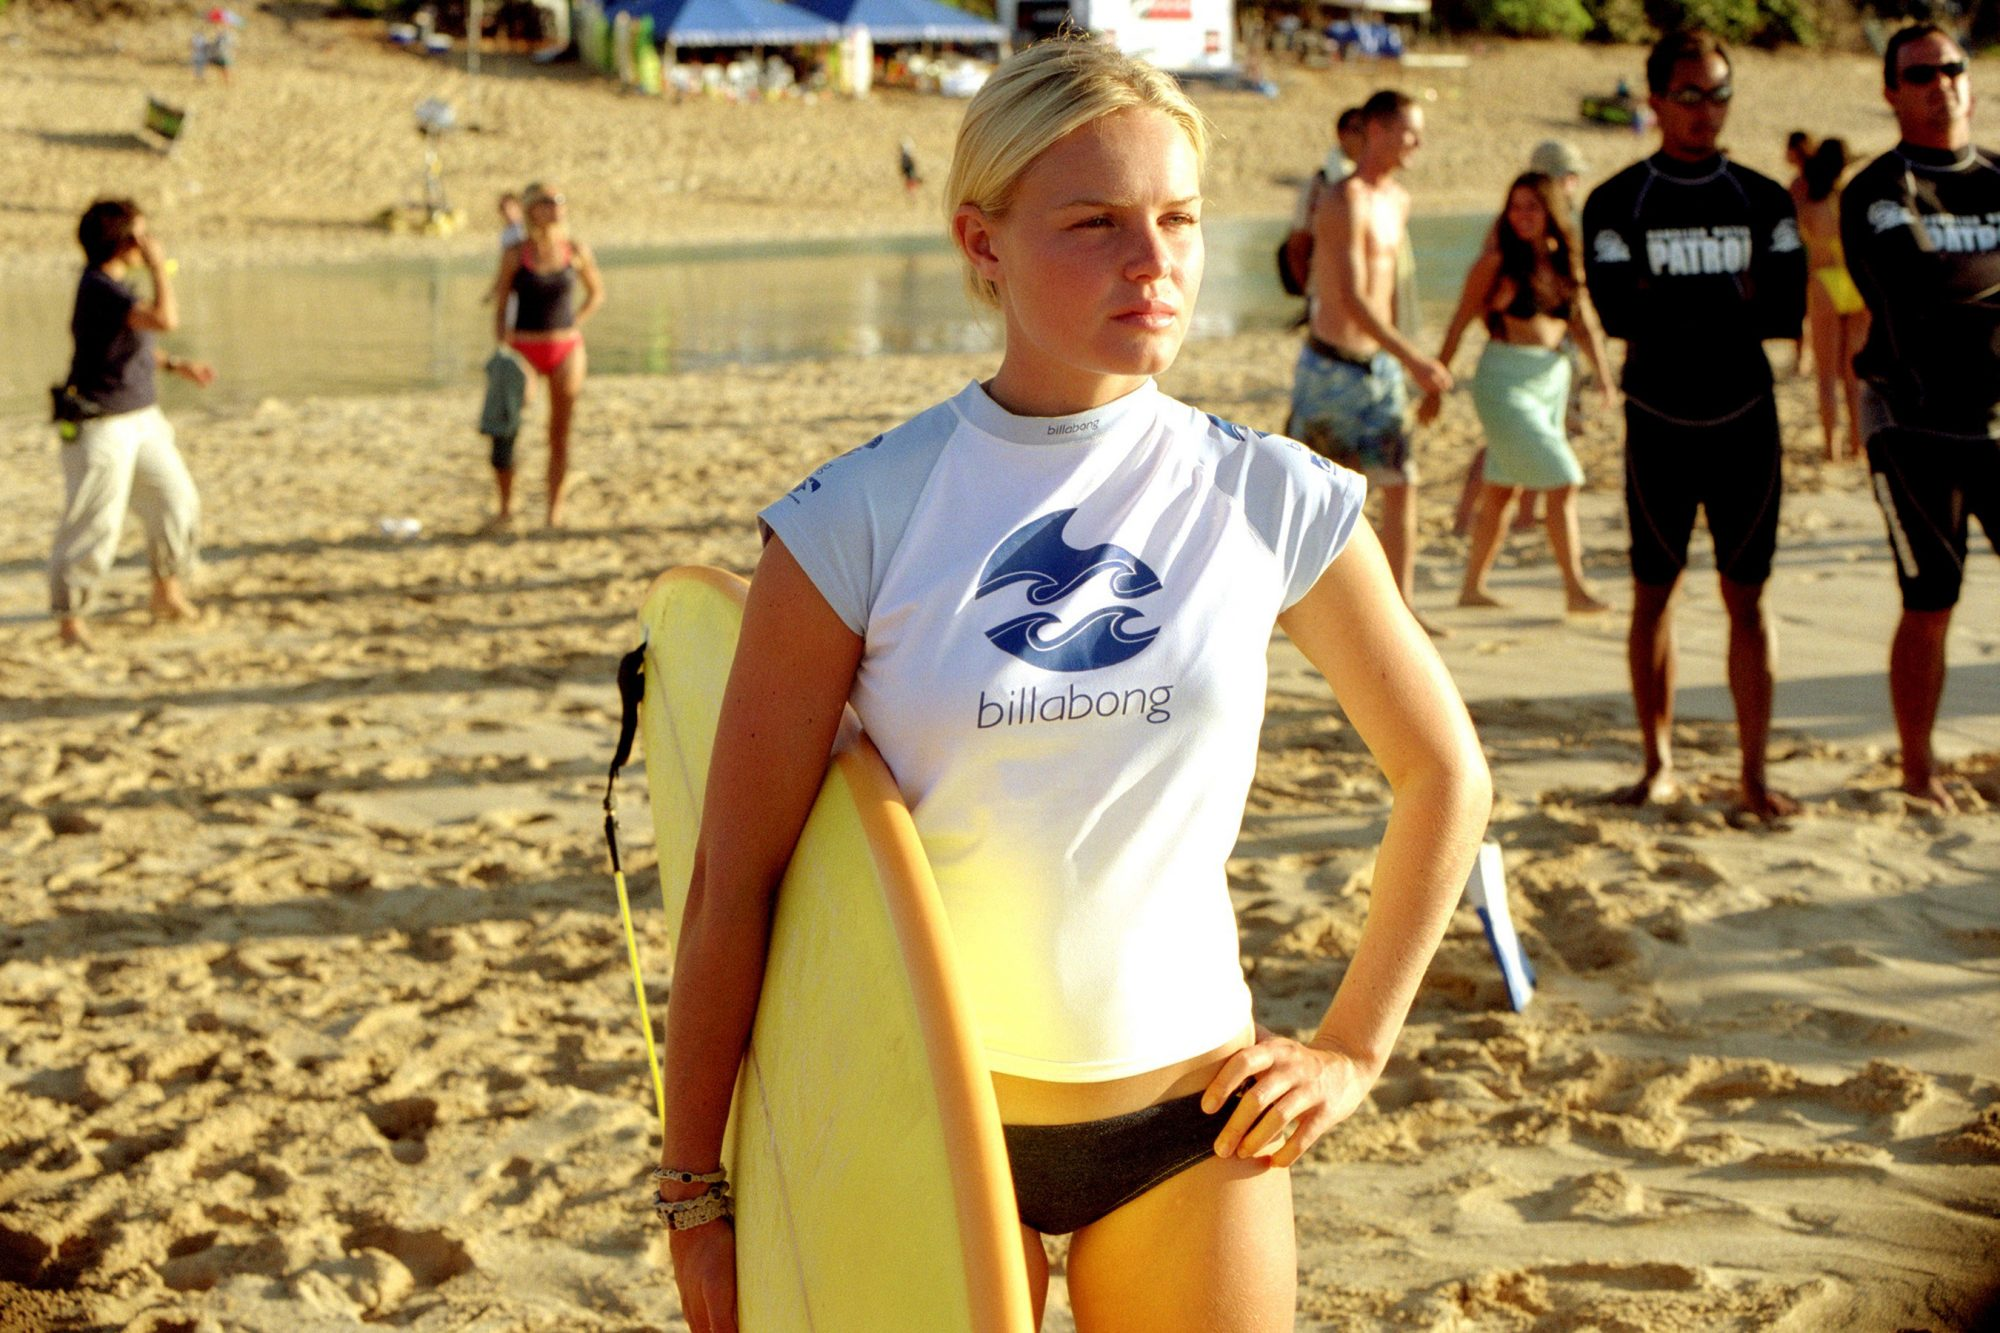 BLUE CRUSH, Kate Bosworth, 2002 (c) Universal, Courtesy Everett Collection